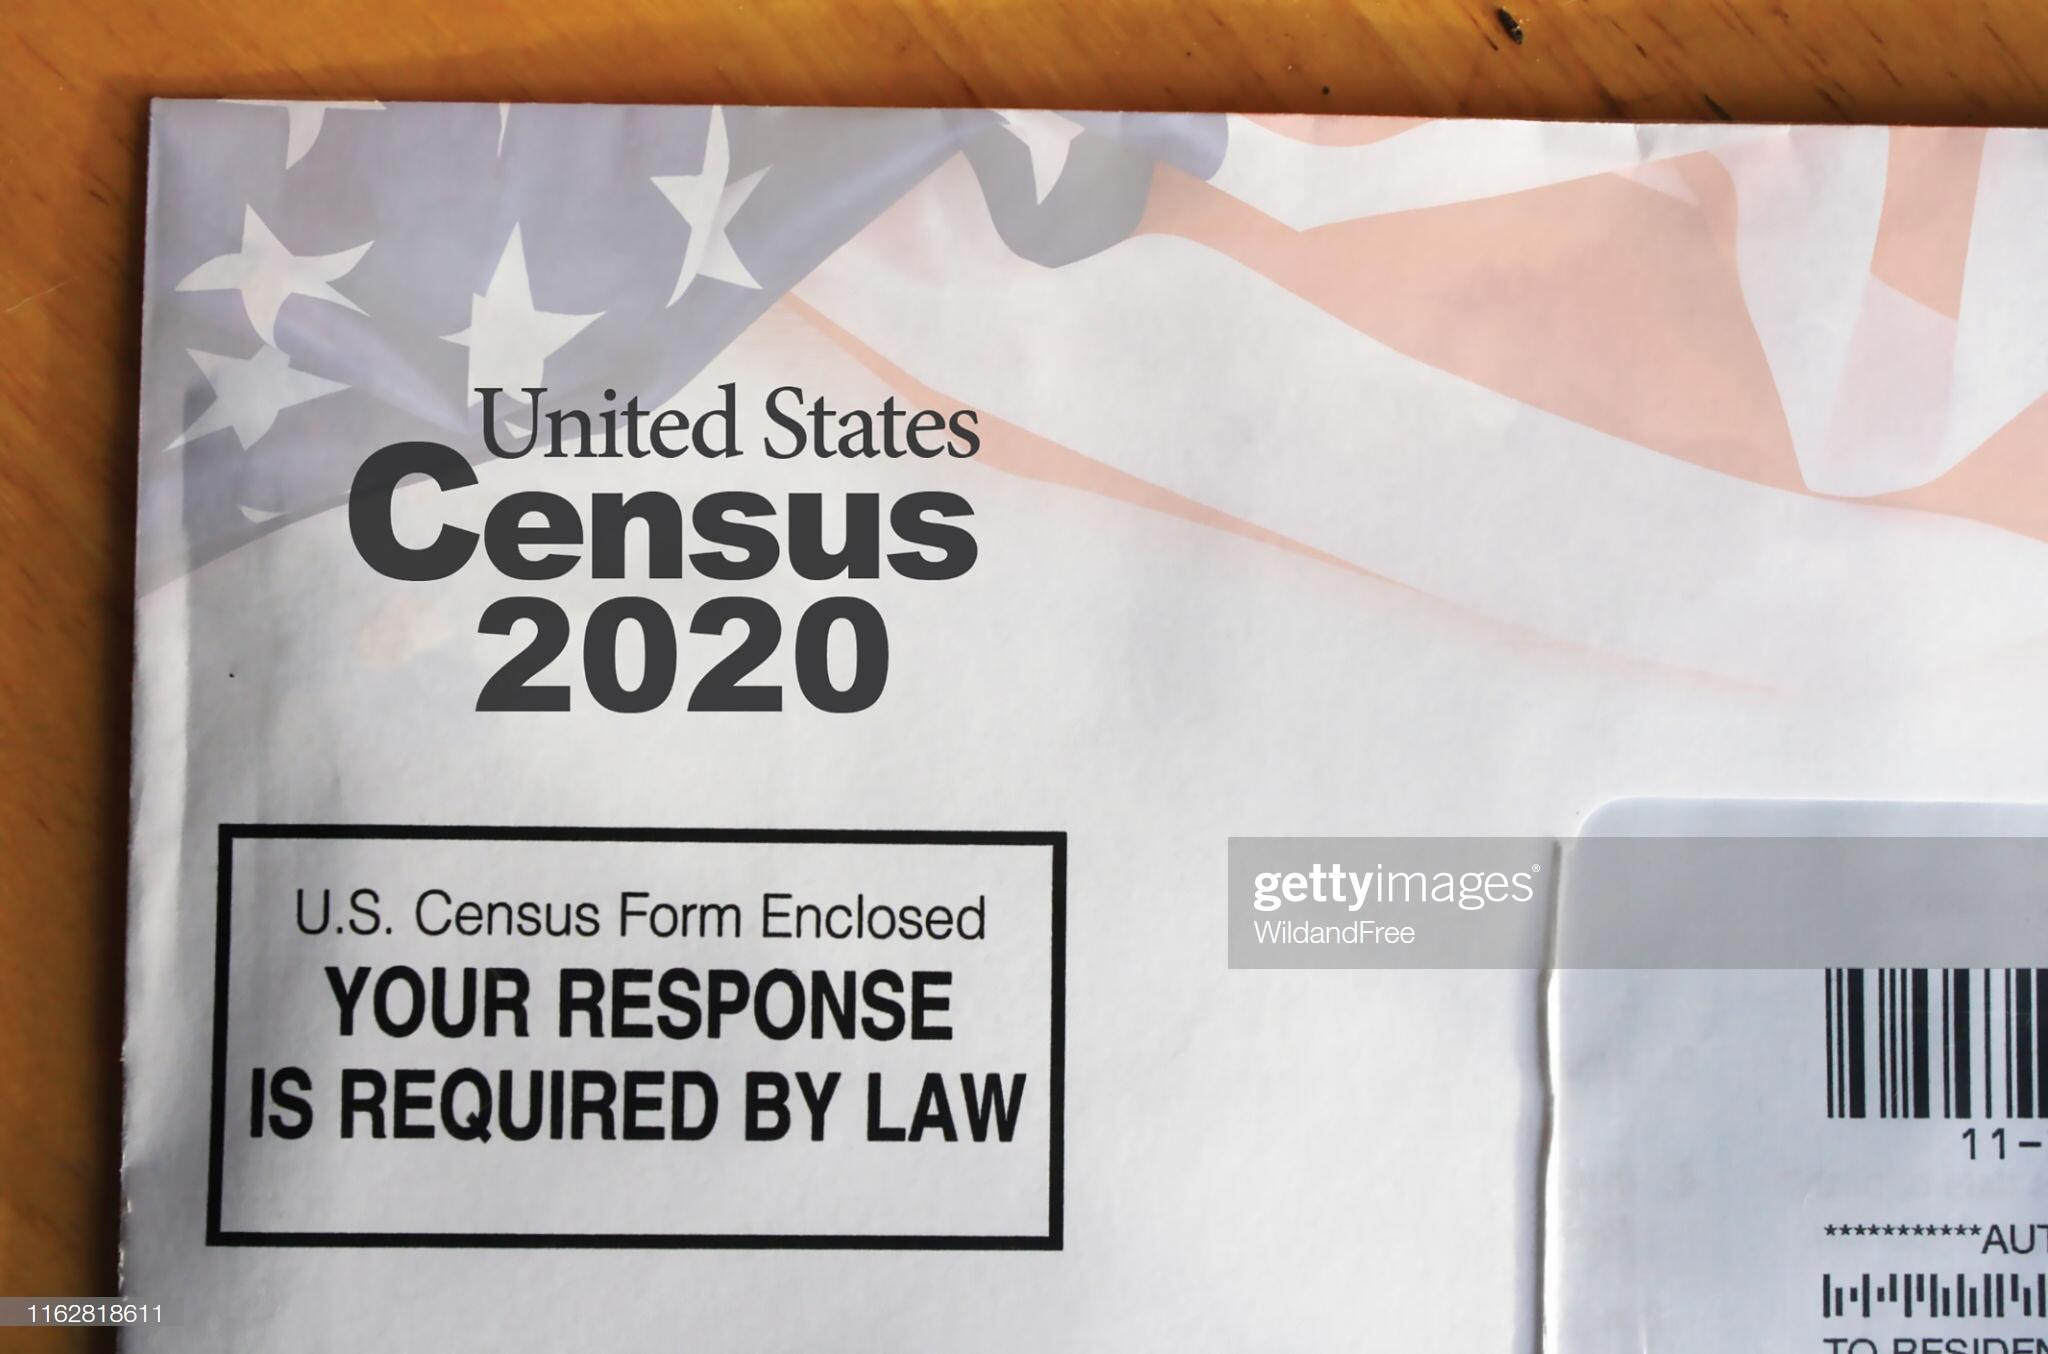 2020 U.S. Census May Be Asking For A Little Too Much Info